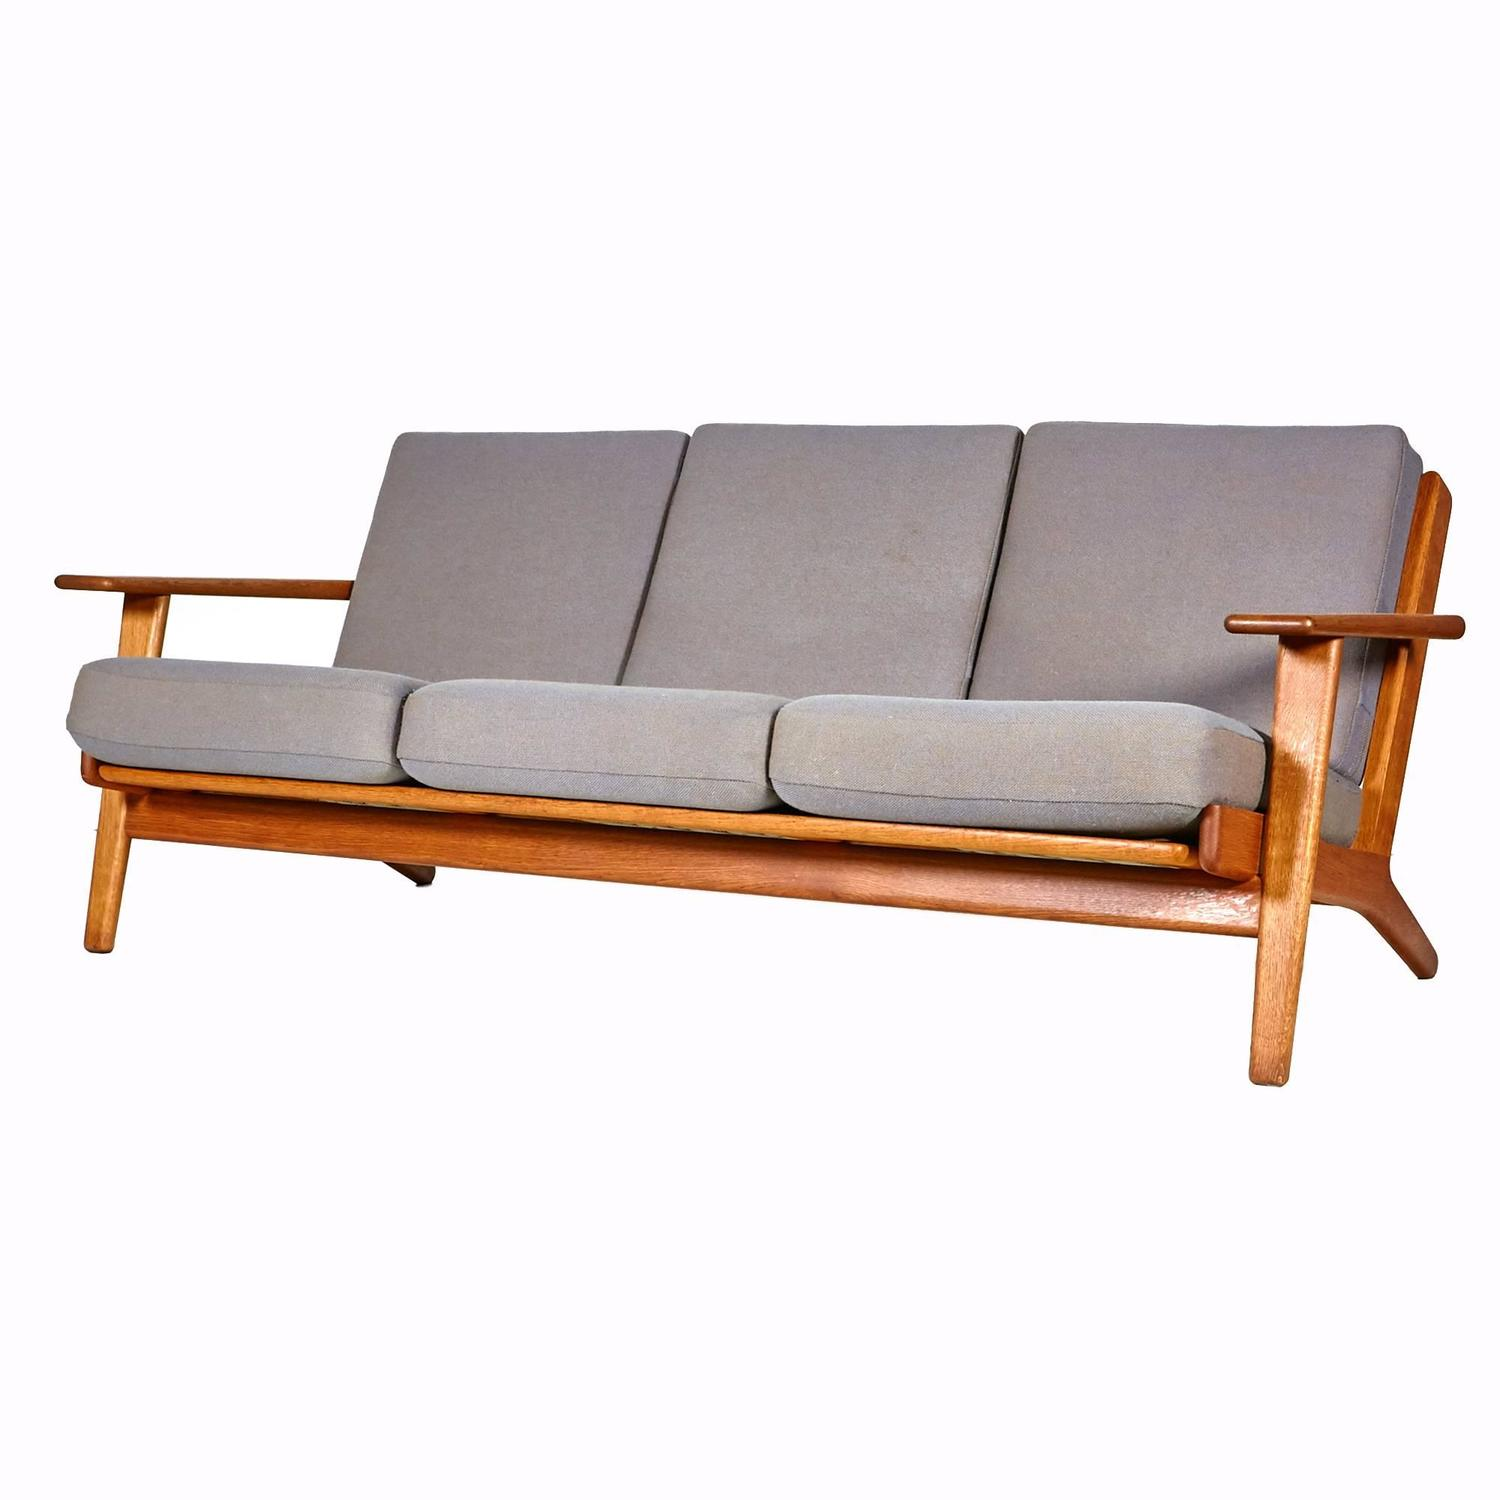 hans j wegner sofa ge 290 in oak for getama at 1stdibs. Black Bedroom Furniture Sets. Home Design Ideas